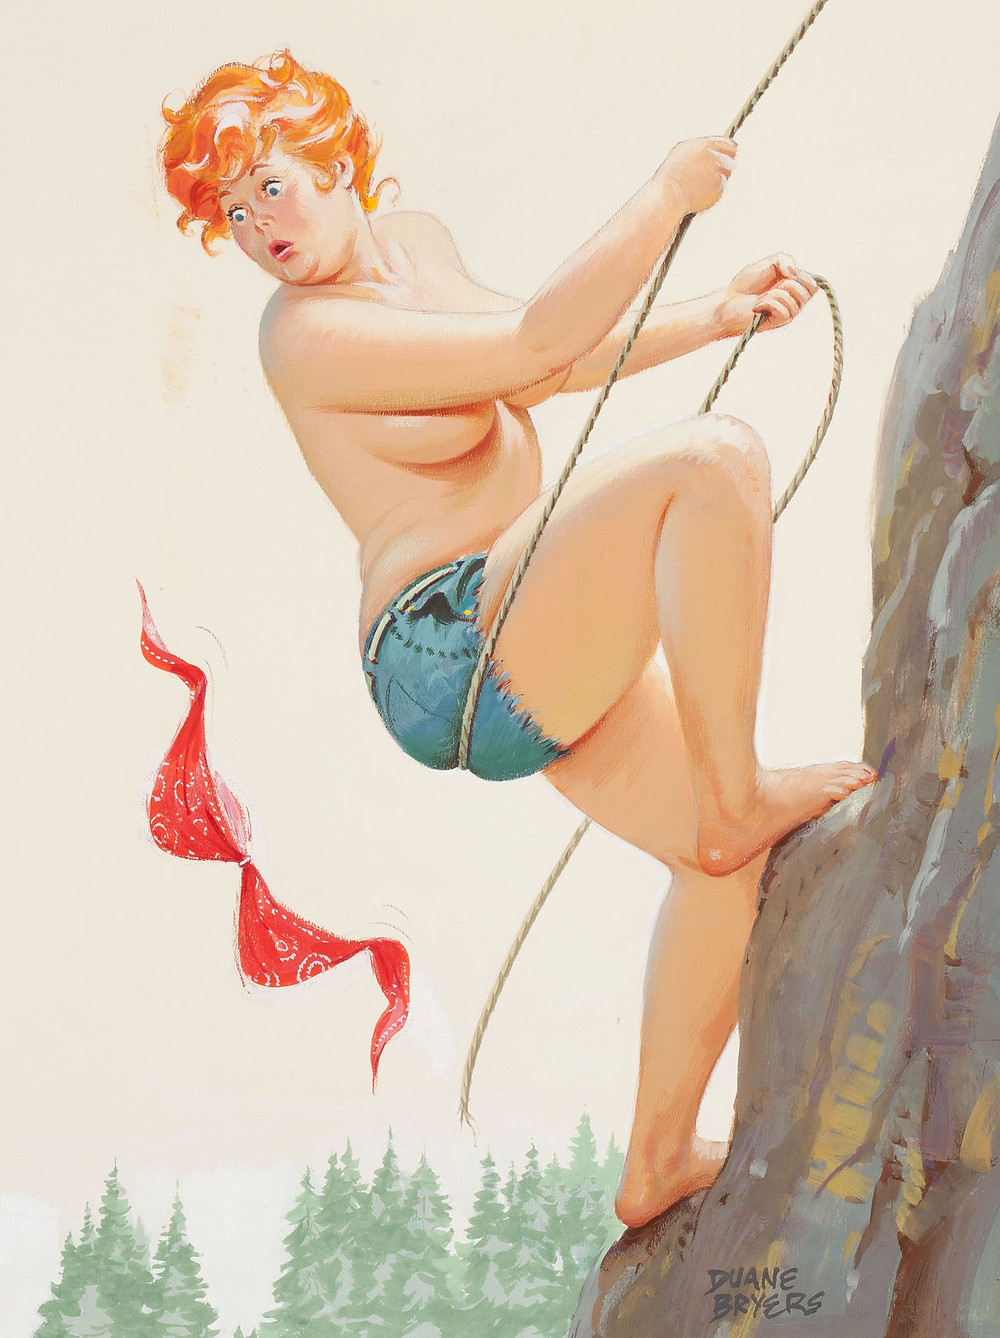 Hilda the Pin-Up Calendar Girl by Duane Bryers (1911 — 2012): A visual essay